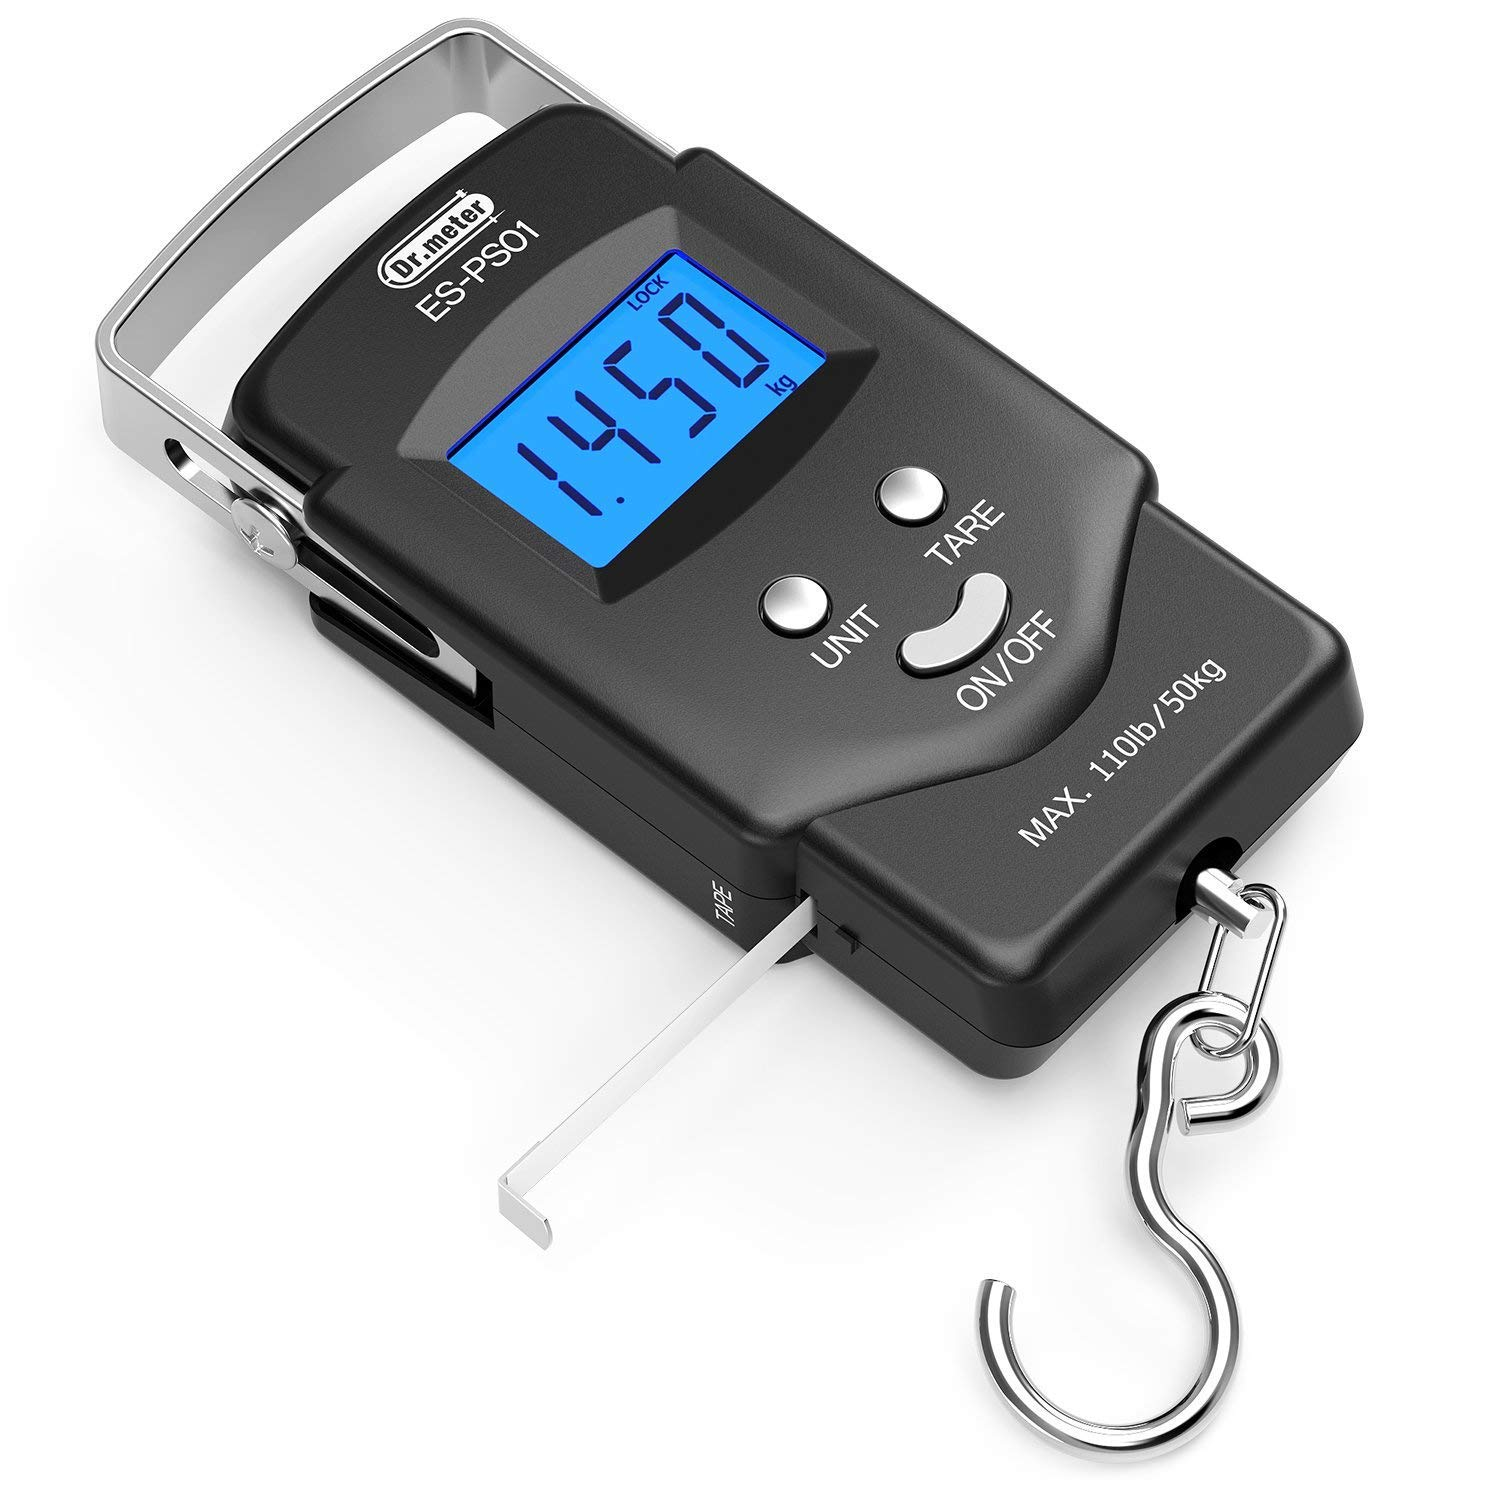 110lb/50kg Electronic Balance Digital Fishing Postal Hanging Hook Scale with Measuring Tape, Dr.Meter Scale with Backlit LCD Display, 2 AAA Batteries Included PS01-V